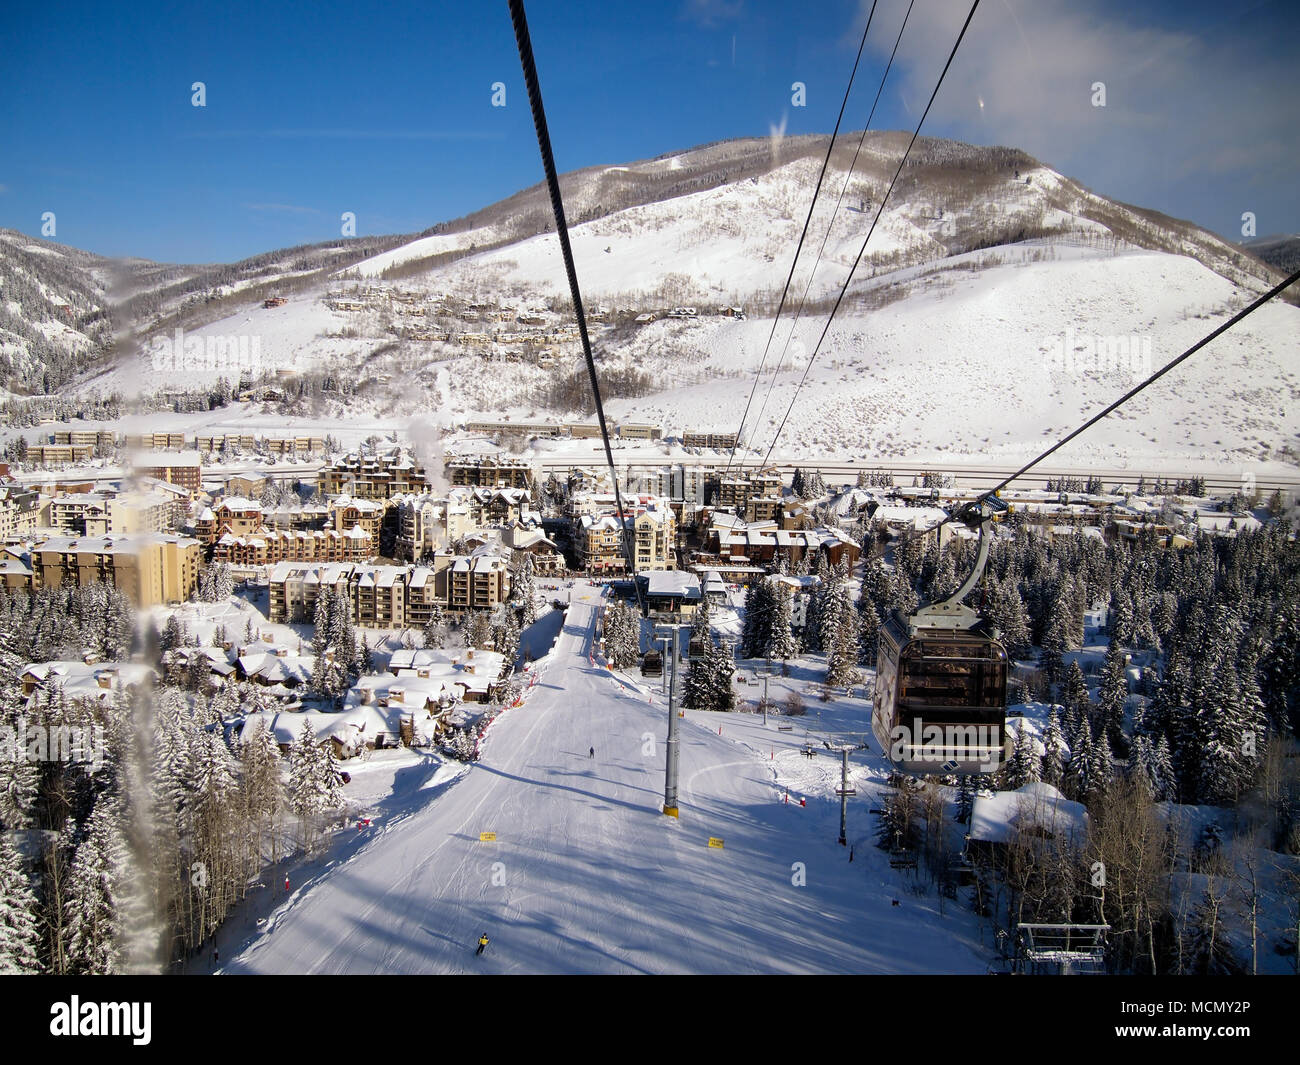 Vail, Colorado; ski resort - Stock Image